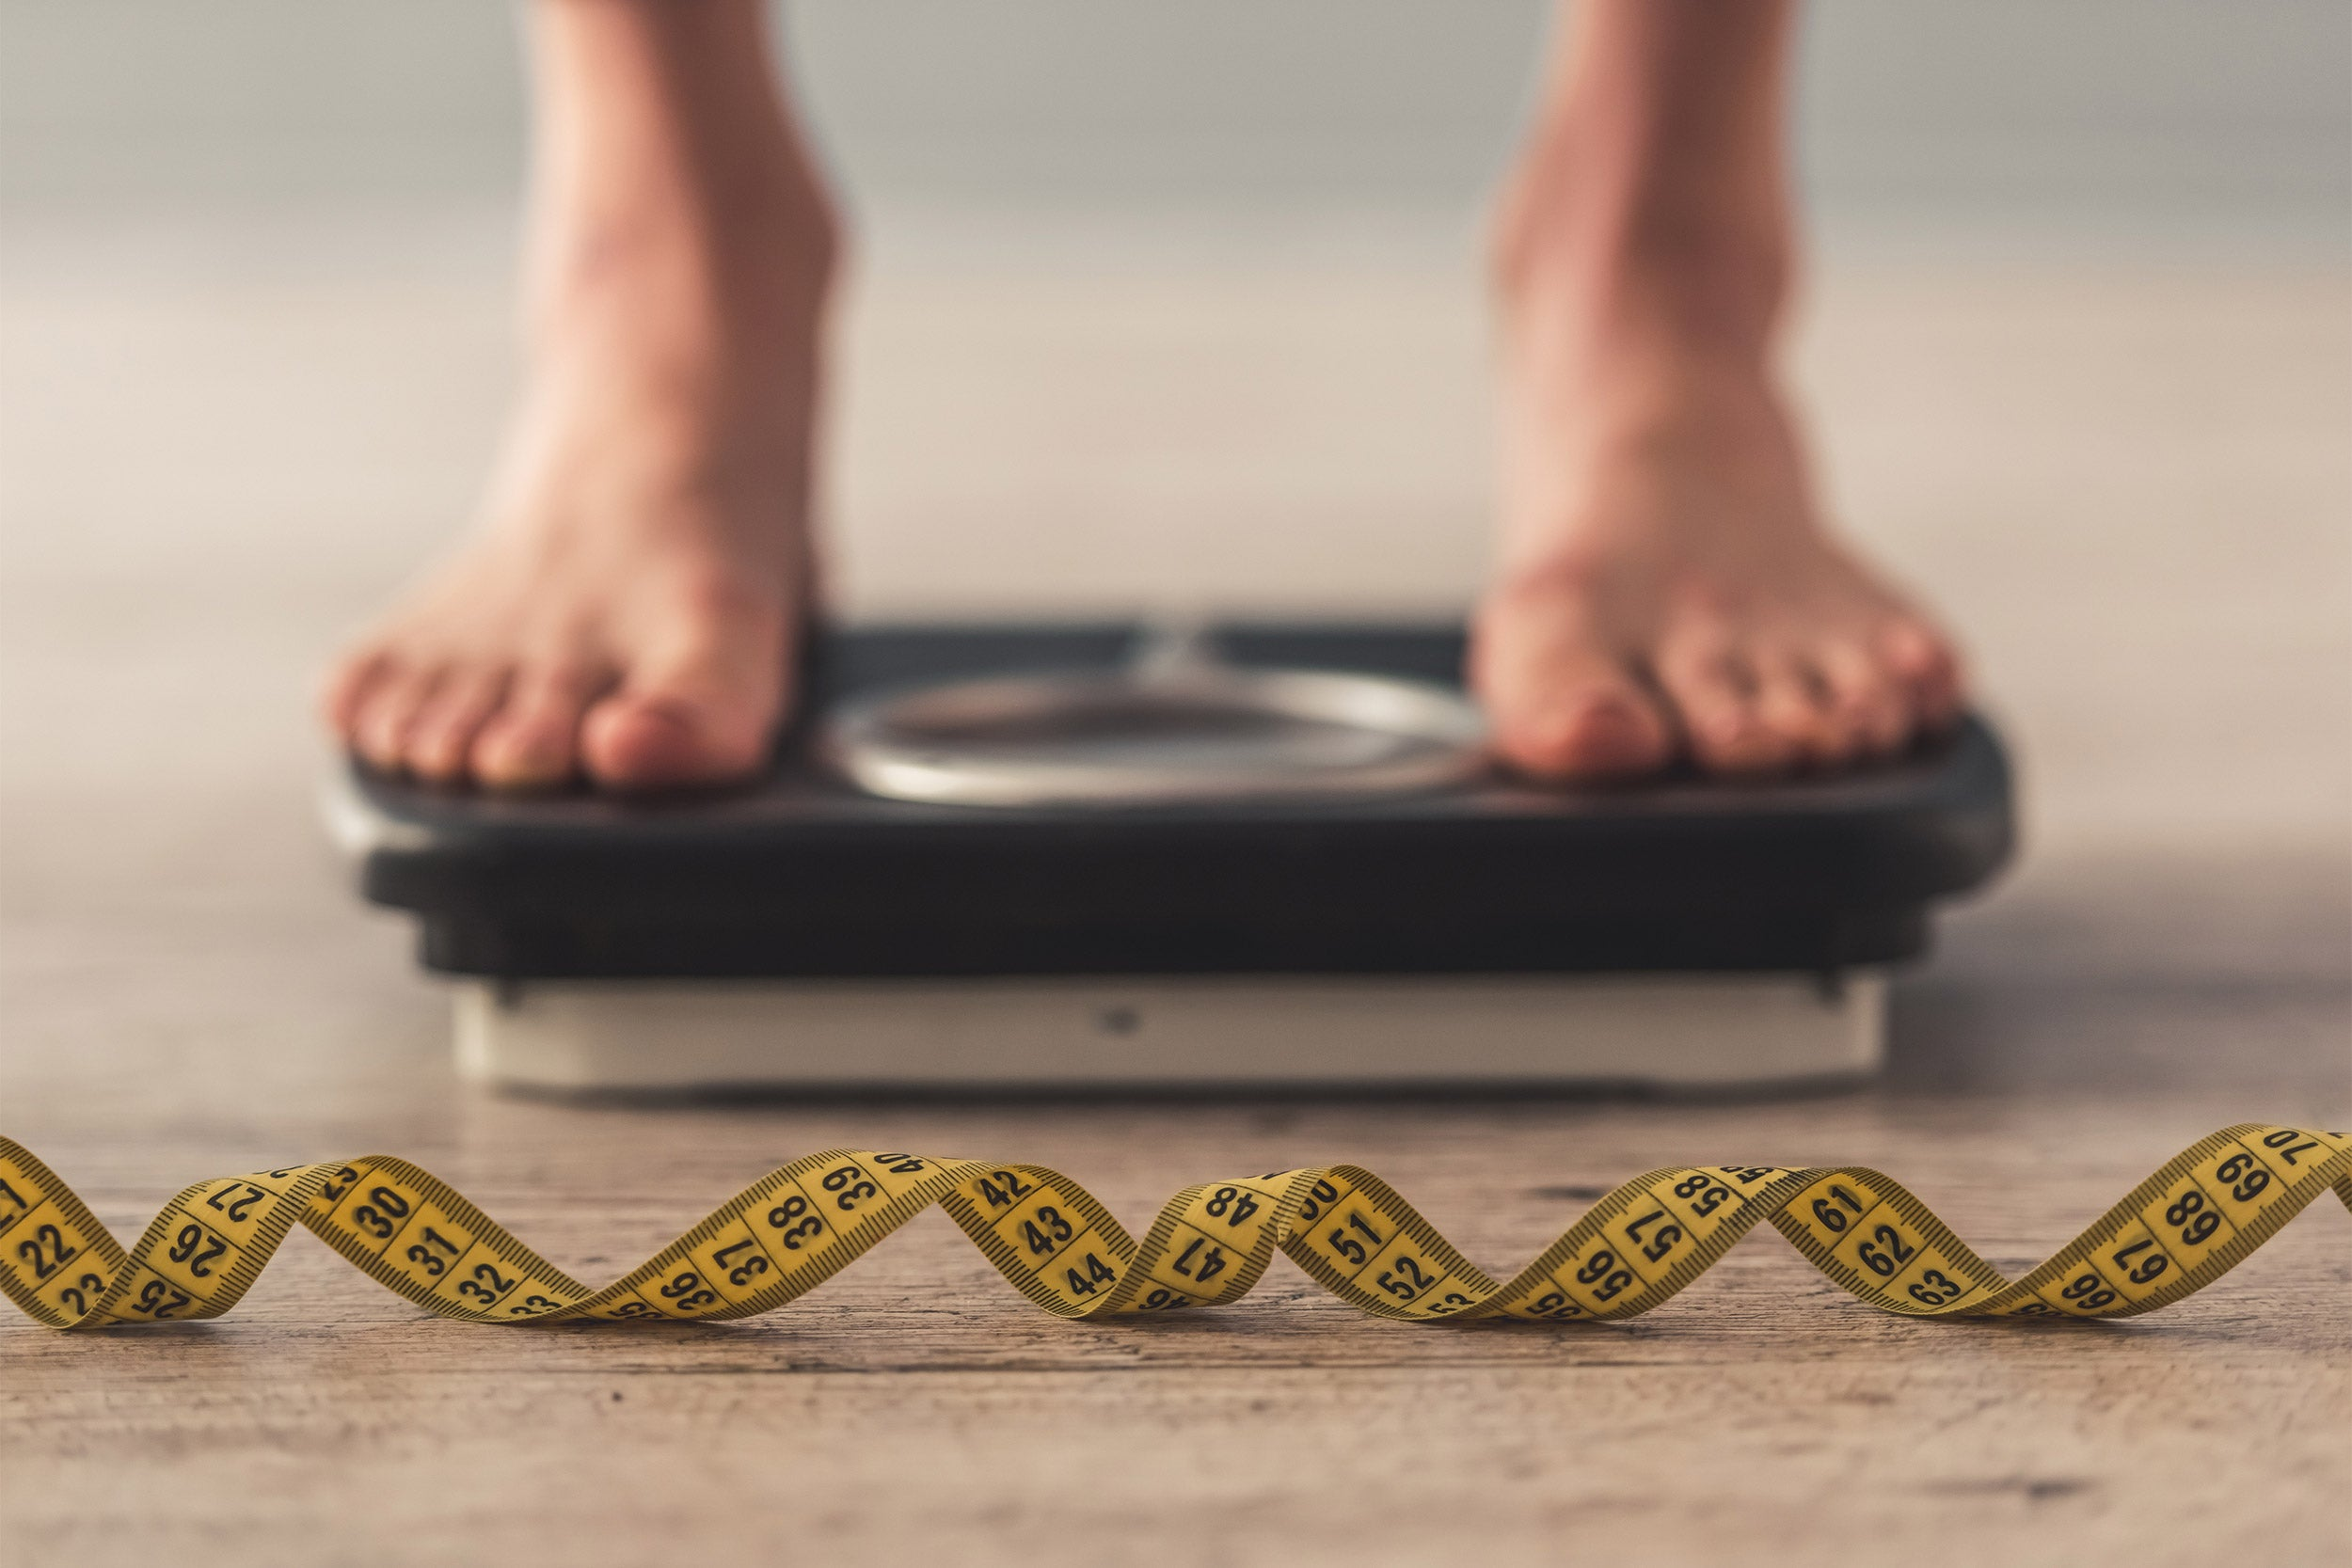 How to drop weight for weigh in